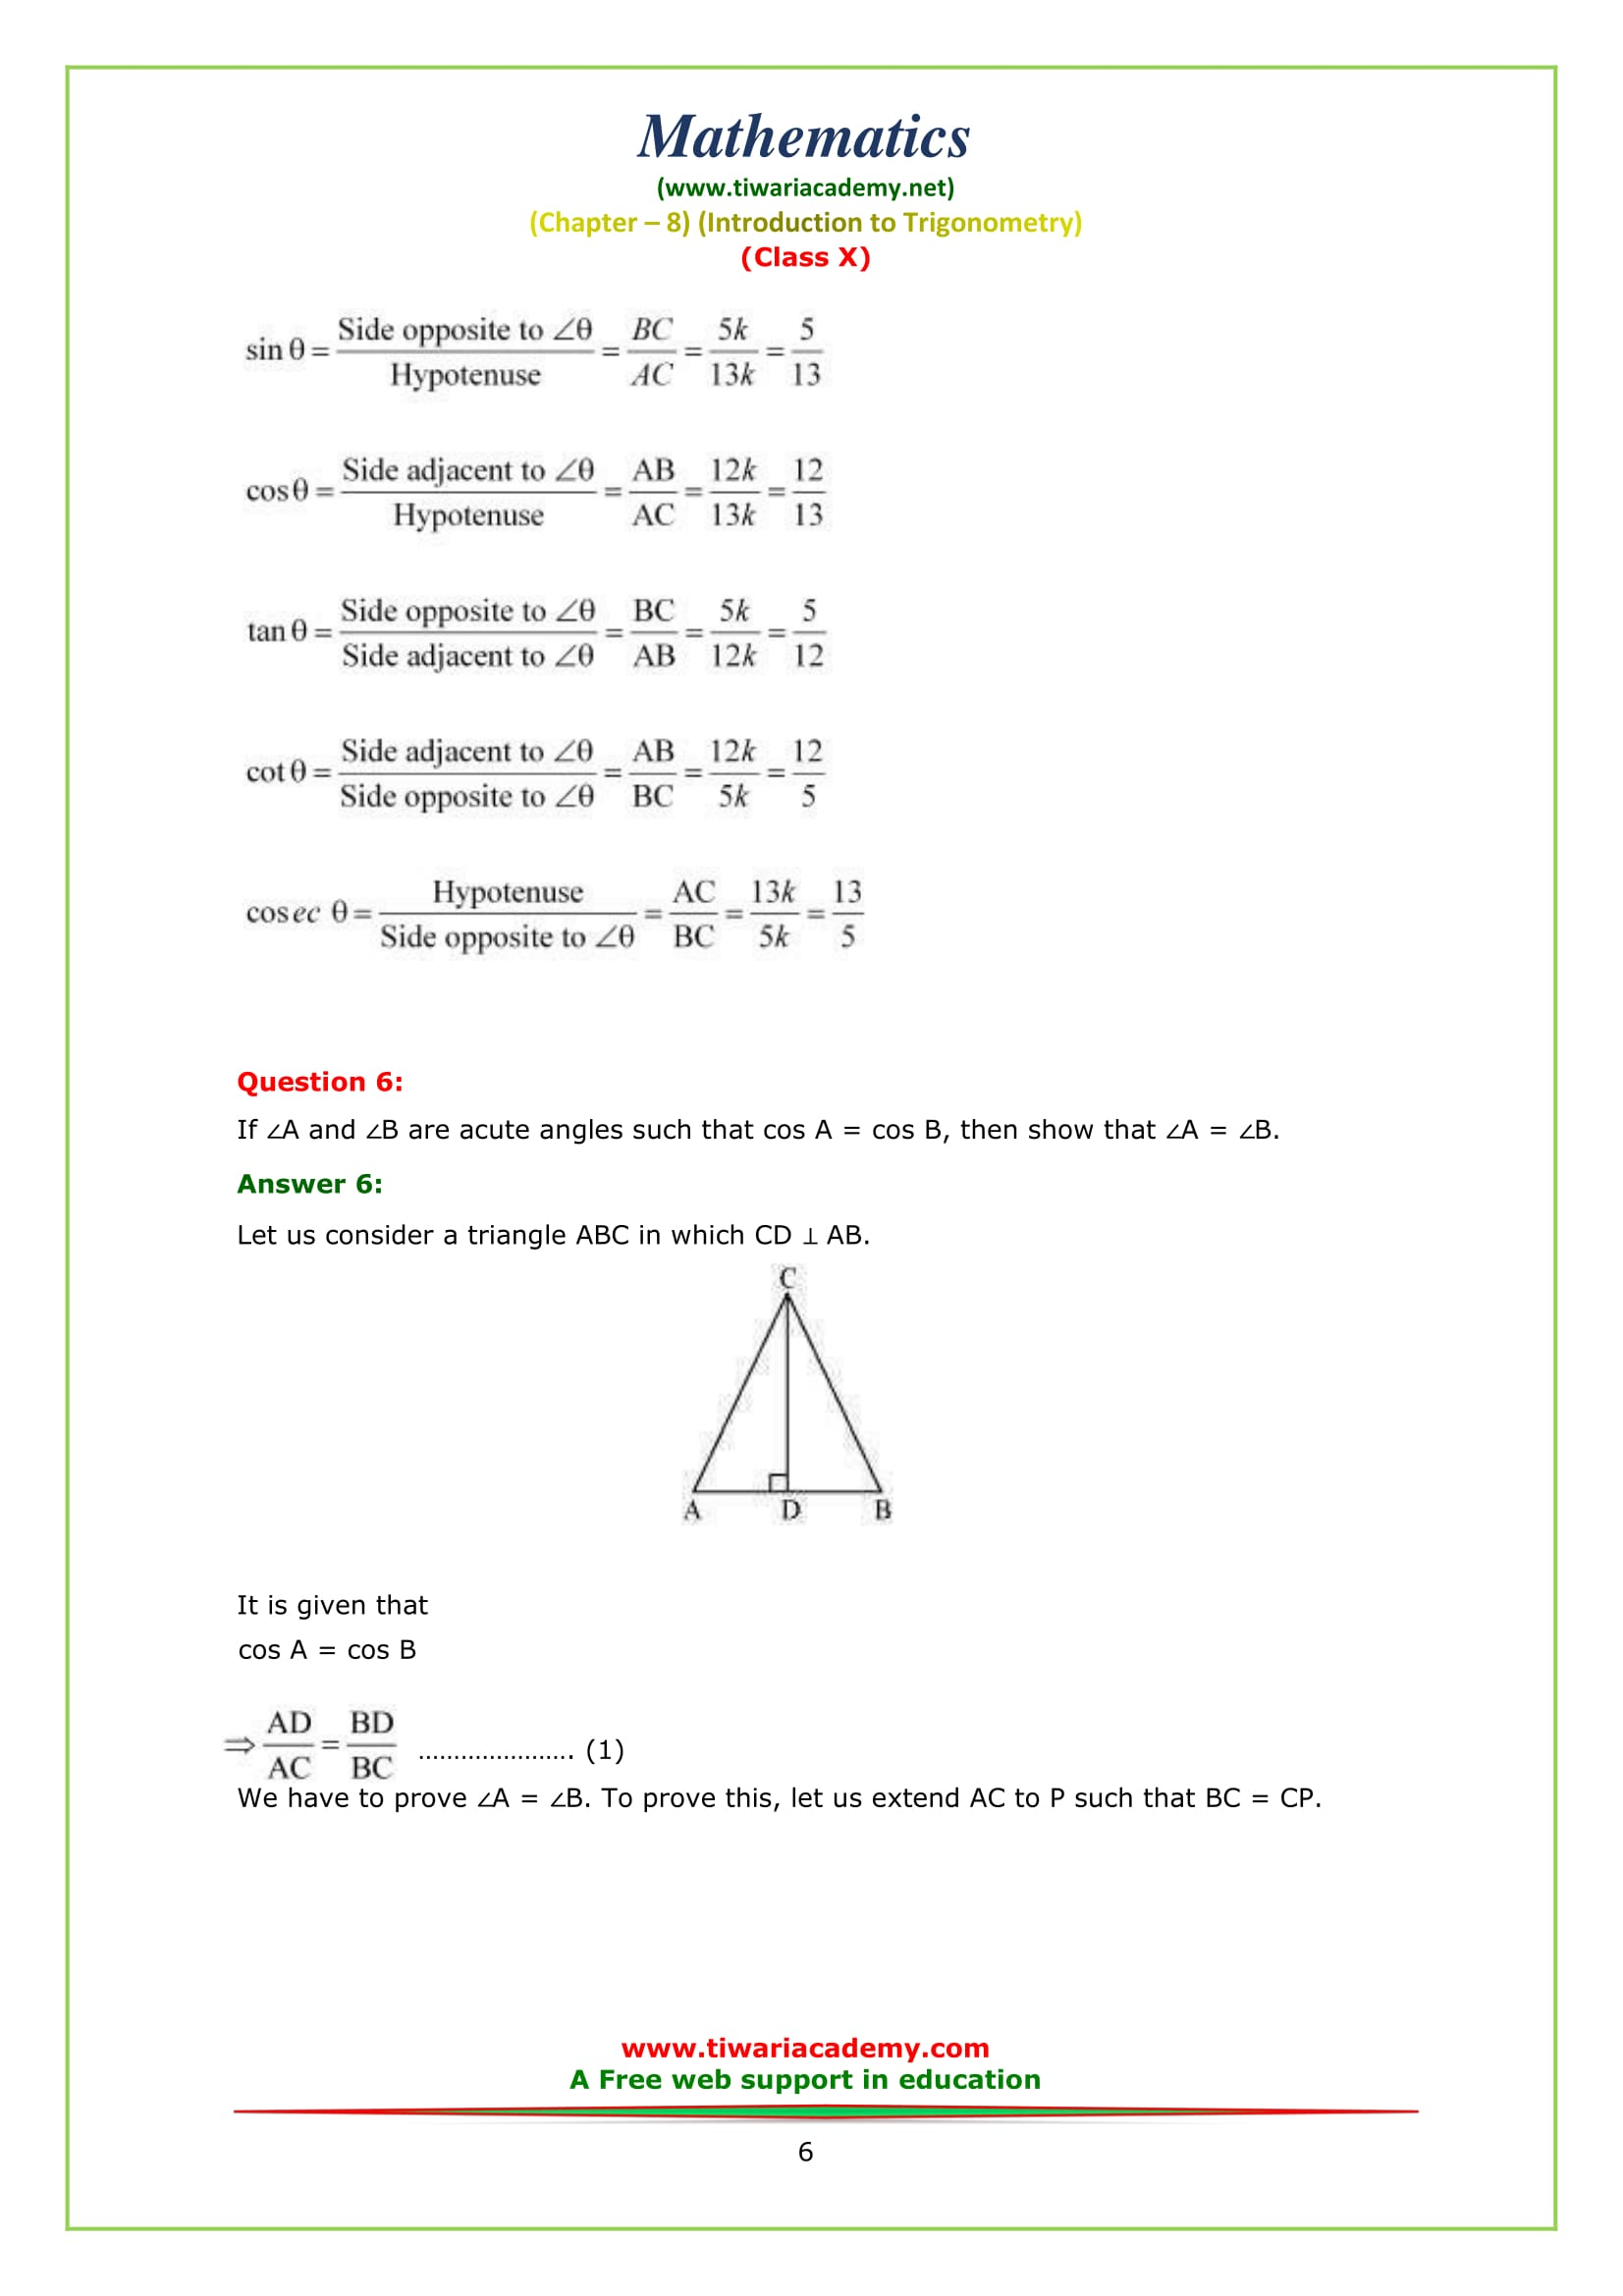 NCERT Solutions for Class 10 Maths Chapter 8 Exercise 8.1 Question 6